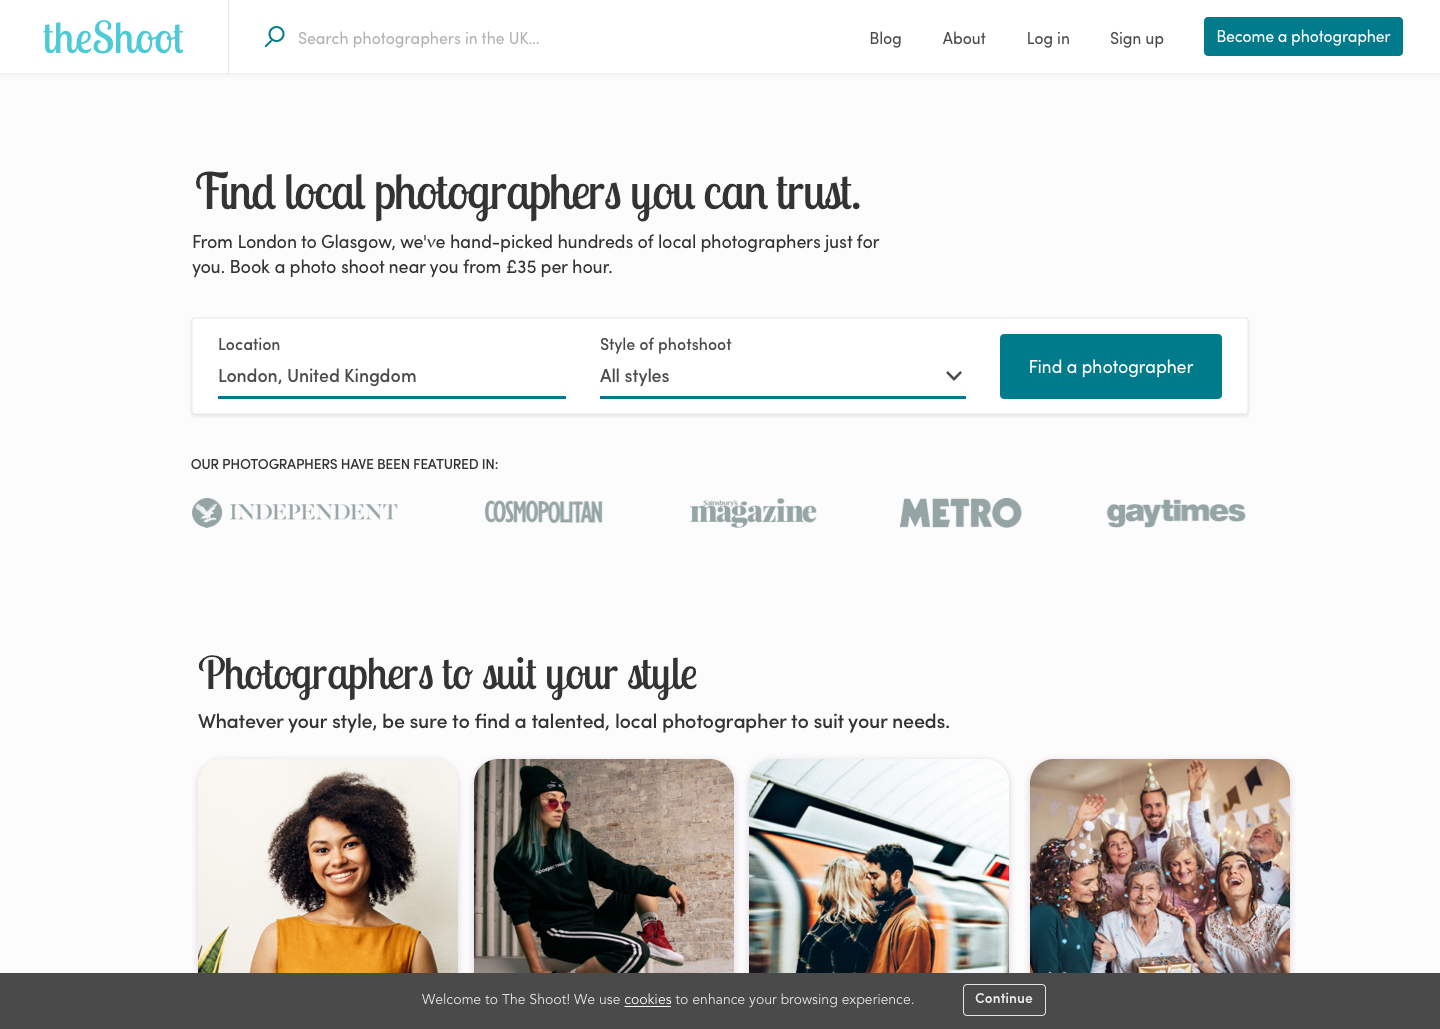 The Shoot homepage page